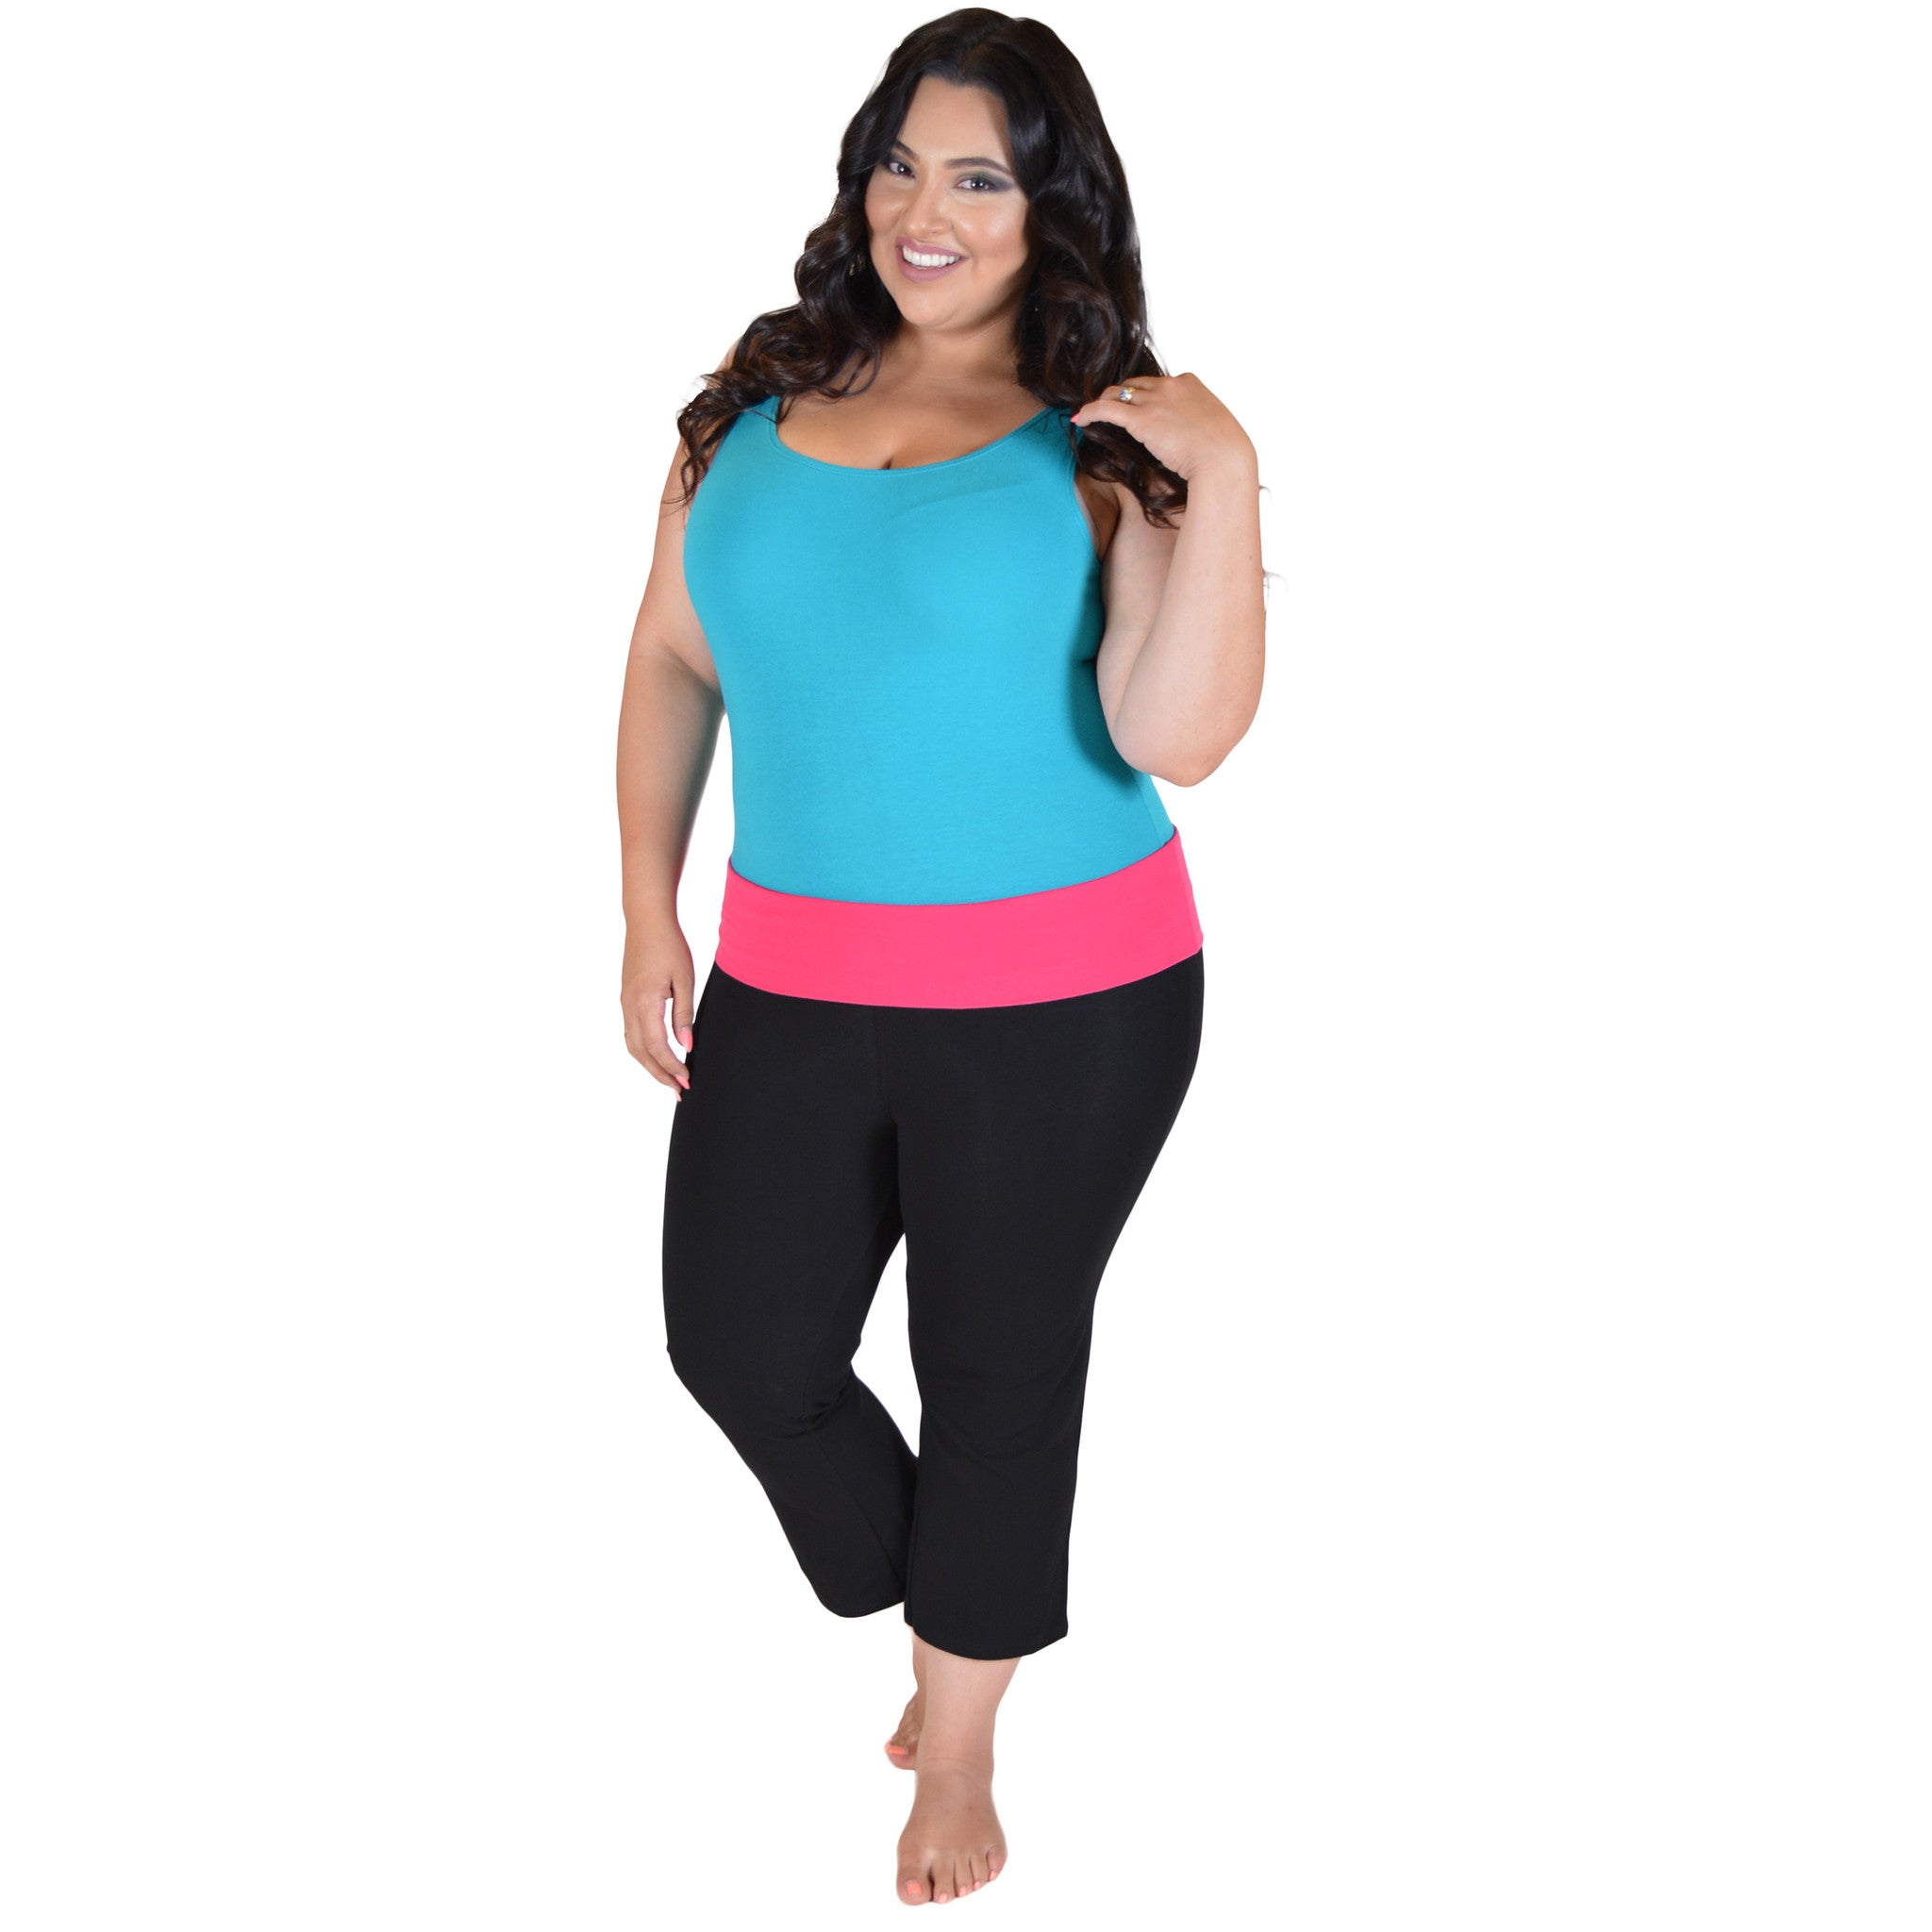 Check out the Livi Active bottoms collection for plus size workout pants in your favorite get-fit styles, like plus size workout capris, leggings, and jogger pants.